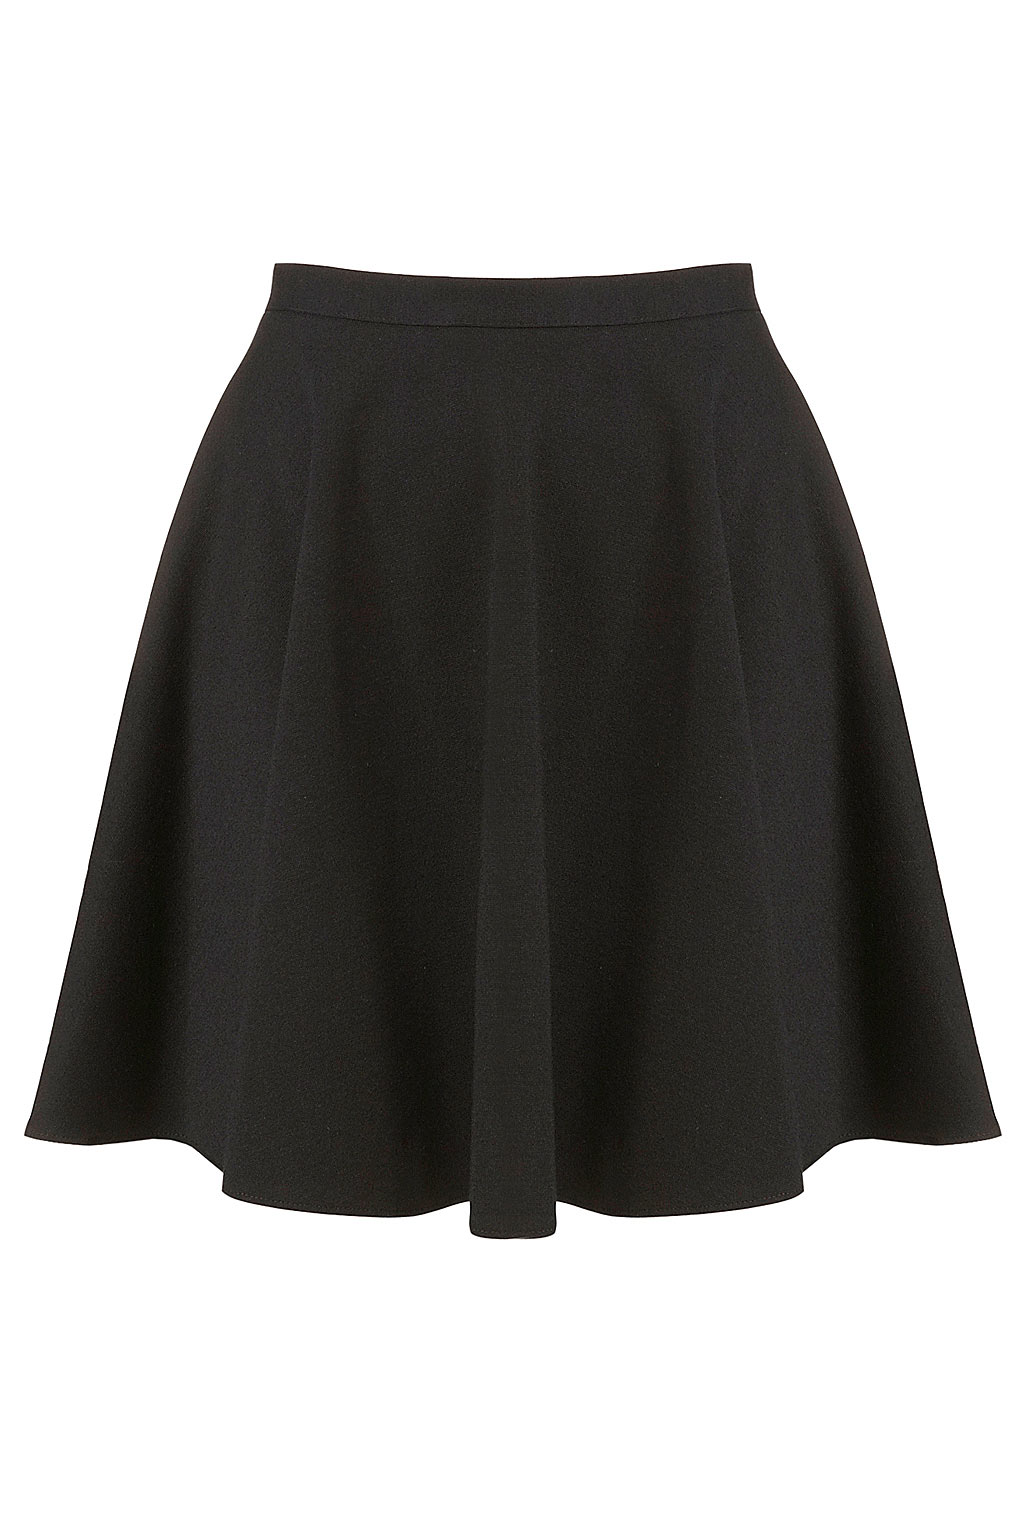 Topshop Black Milano Skater Skirt in Black | Lyst